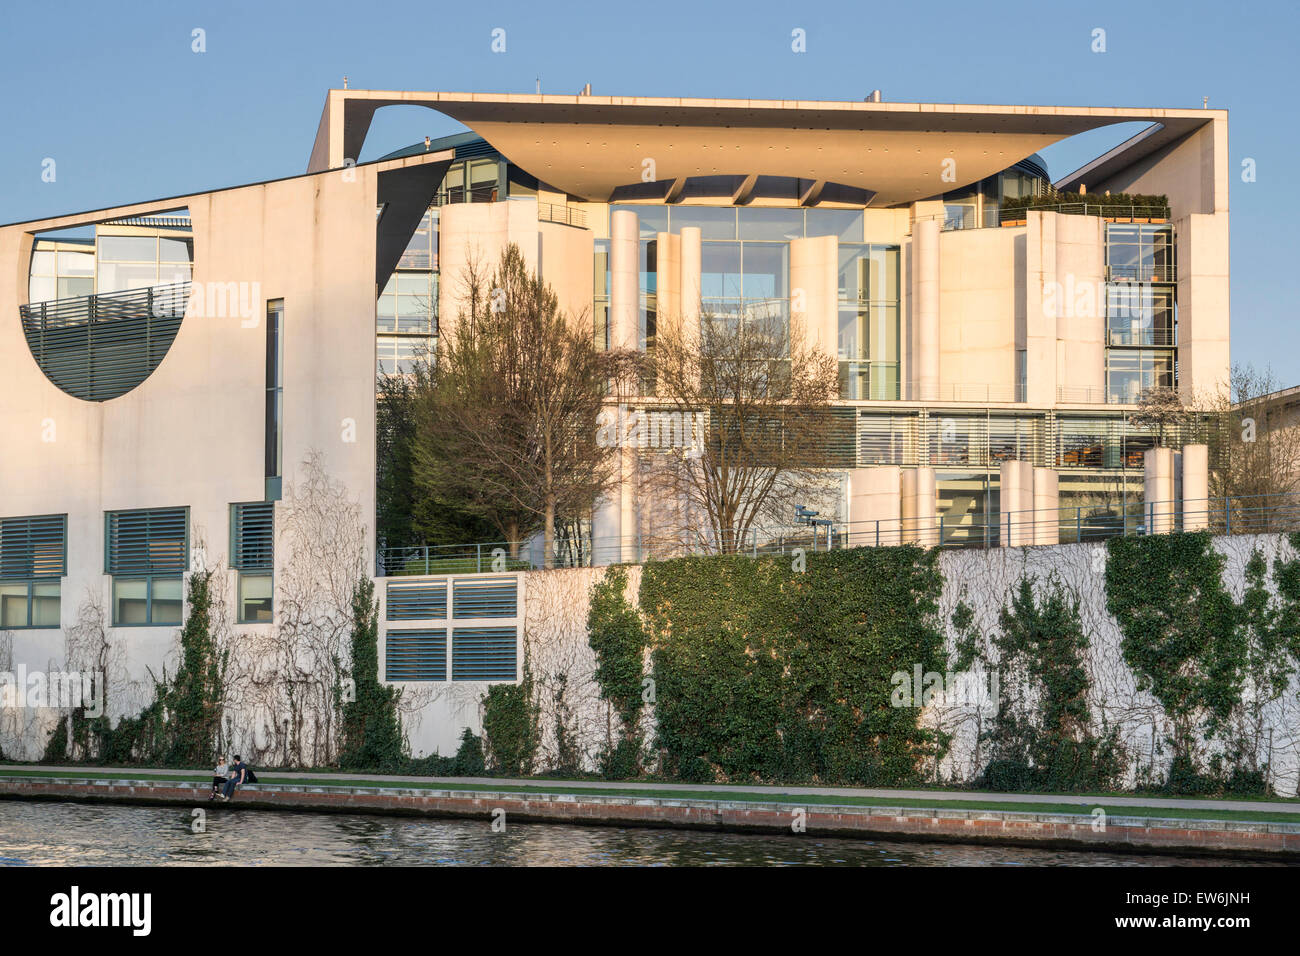 Bundeskanzleramt , River Spree, Berlin, Germany Stock Photo